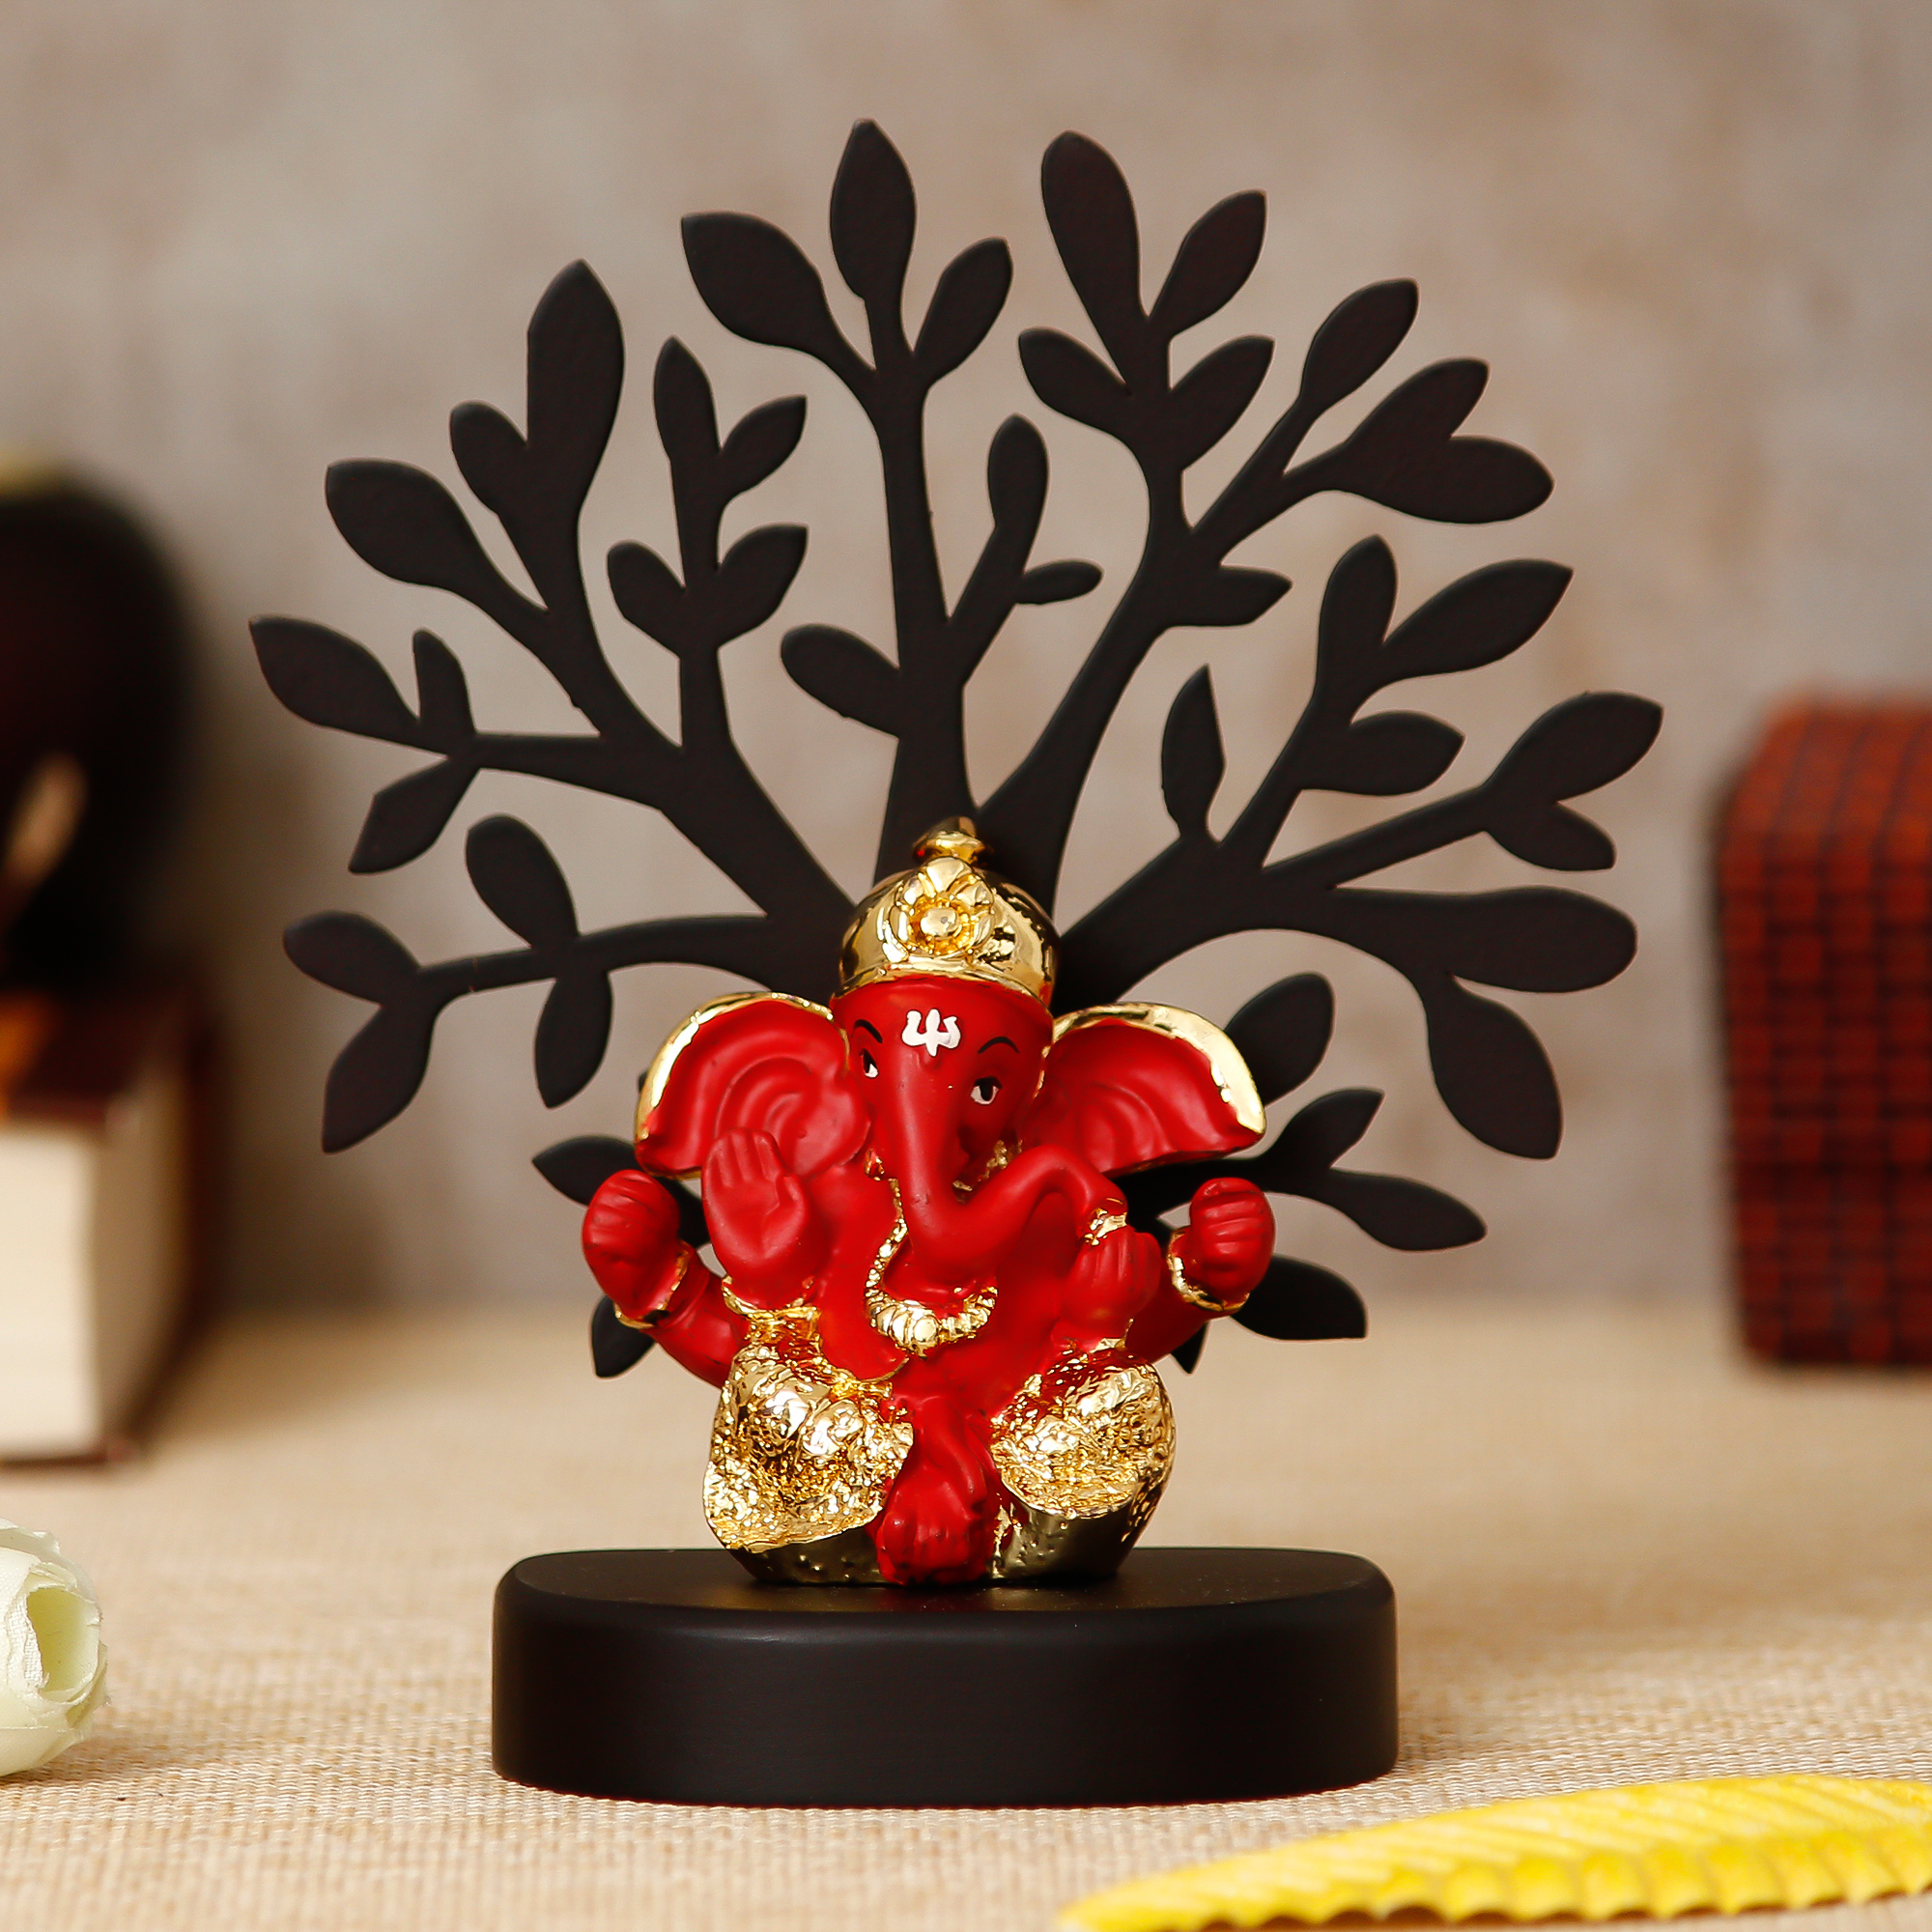 Gold Plated Orange Dhoti Ganesha Decorative Showpiece with Wooden Tree for Home/Temple/Office/Car Dashboard Indian Home Decor